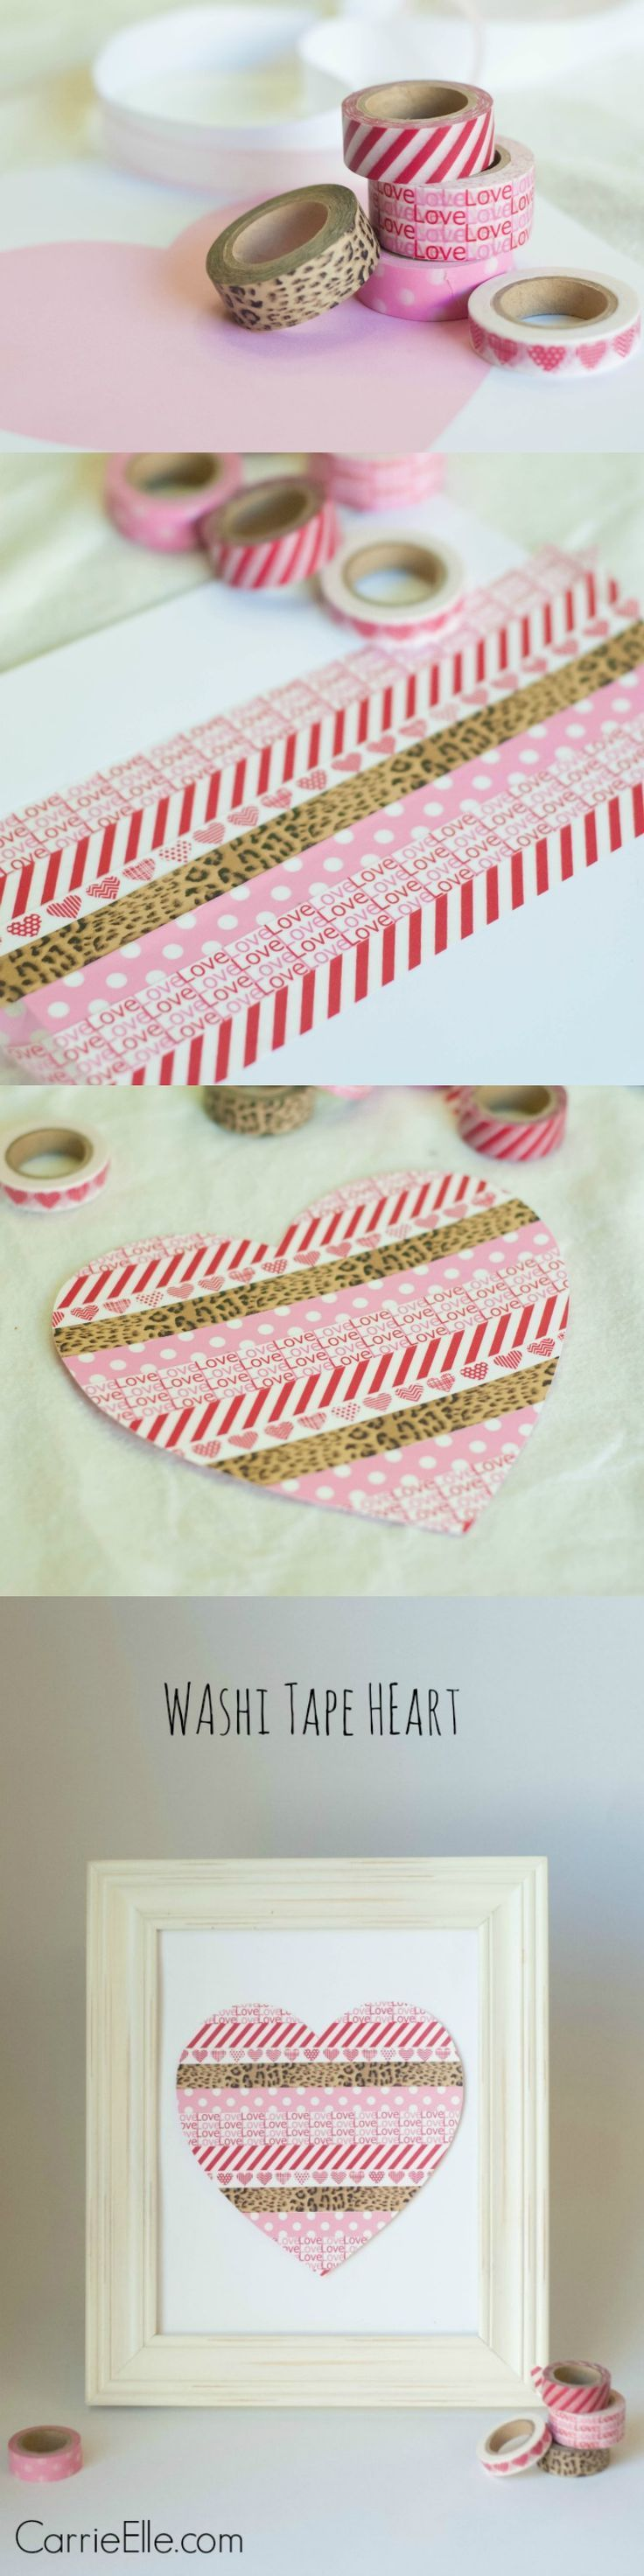 This easy washi tape craft is adorable, inexpensive, kid-friendly, and versatile, too! Be sure to check out all the fun ideas and other crafts that you can make with this washi tape heart.